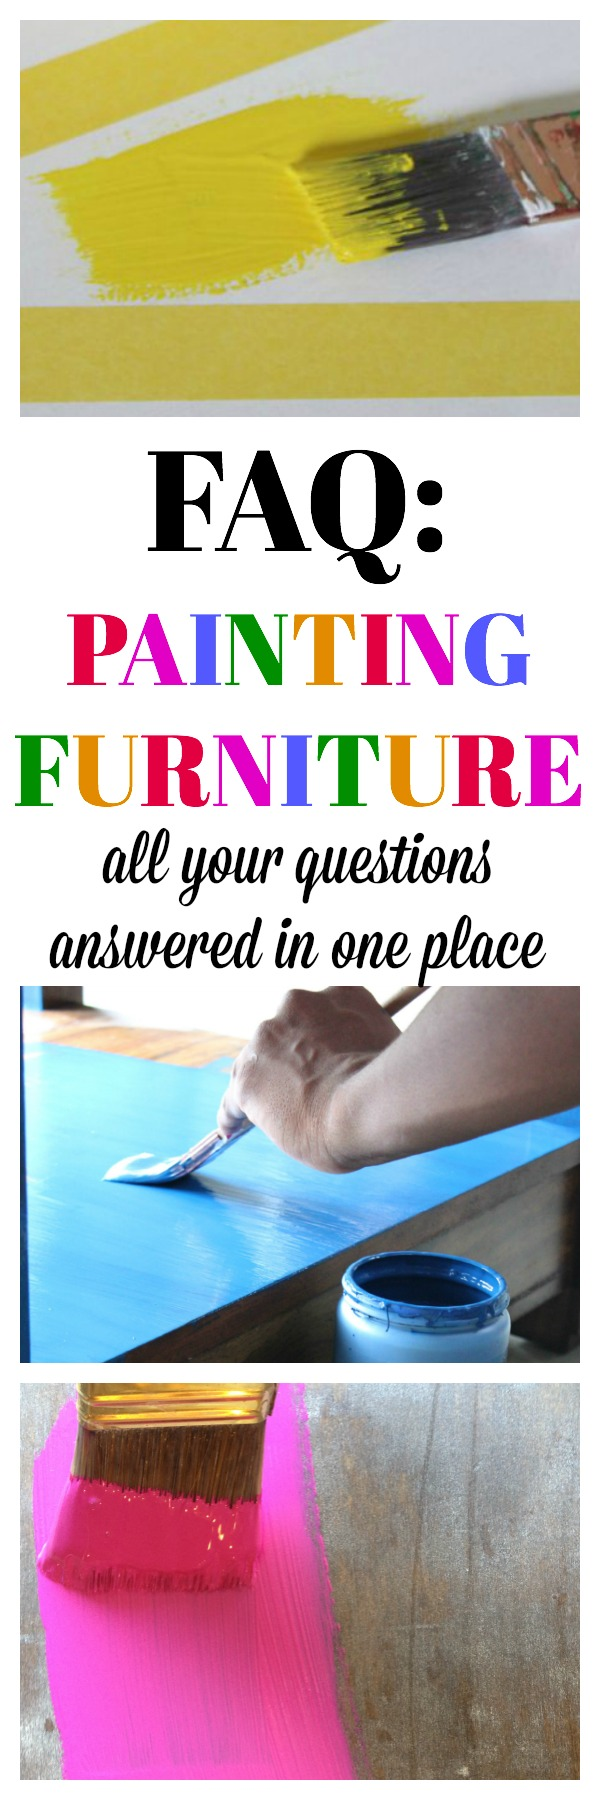 FAQ - painting furniture